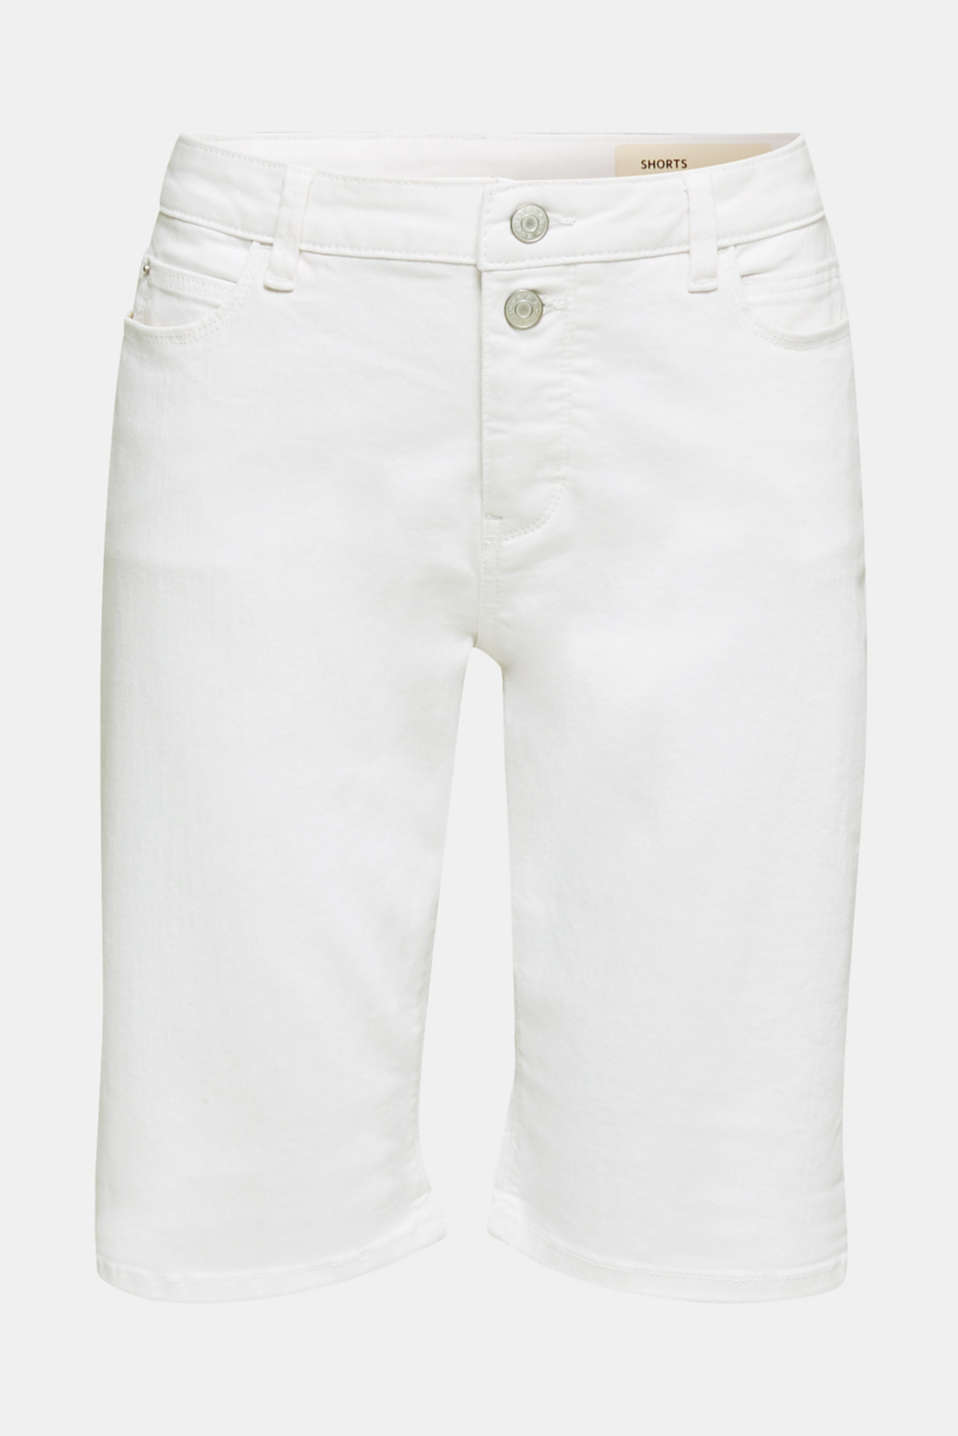 Denim Bermuda shorts with a button placket, WHITE, detail image number 7